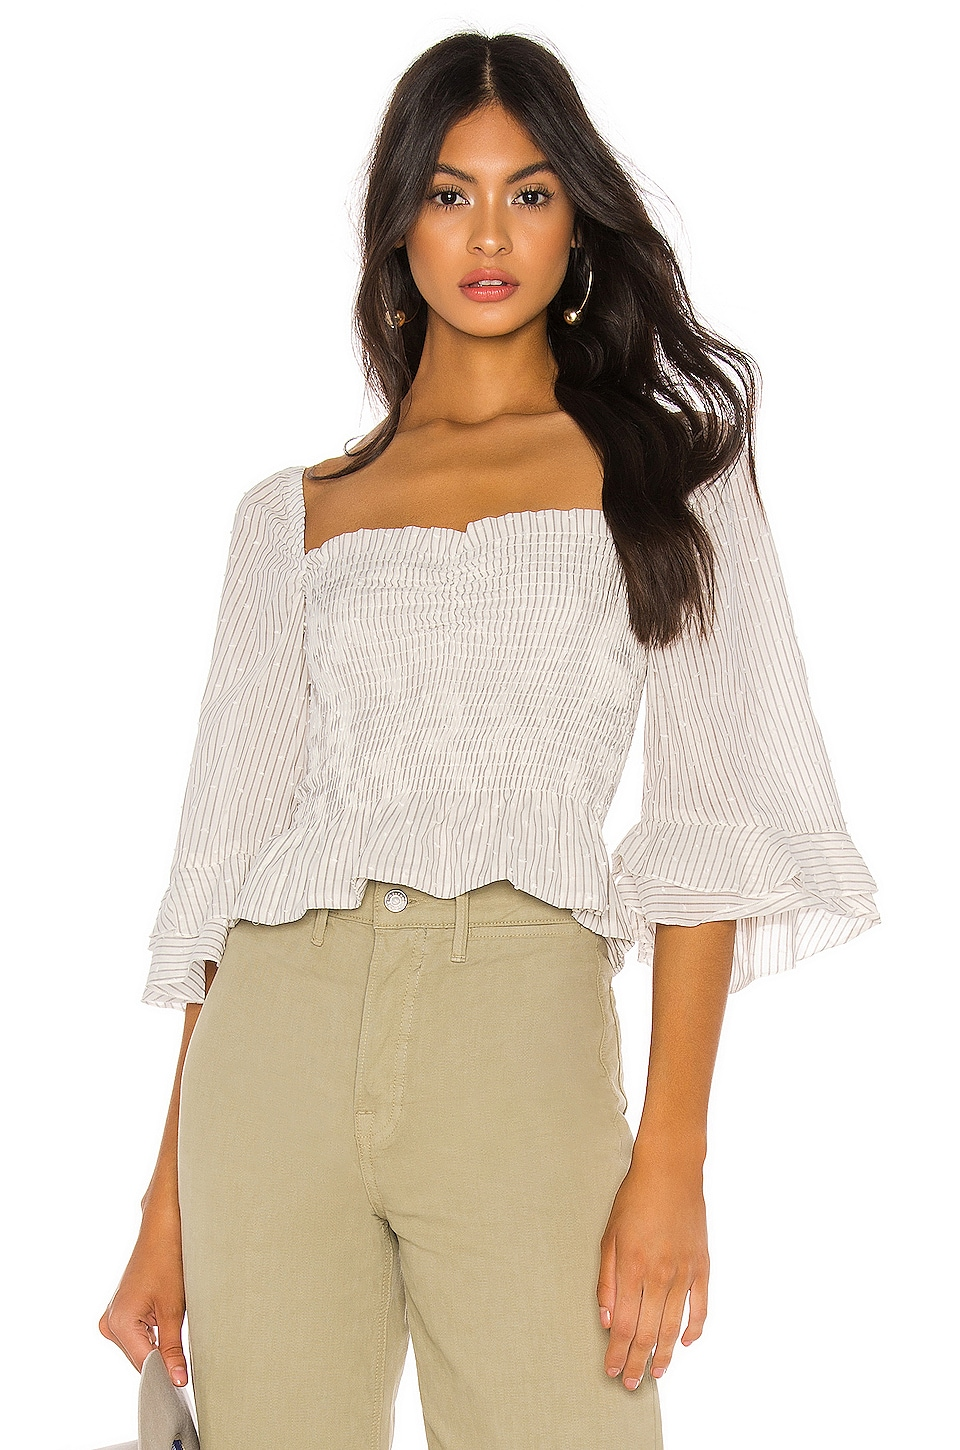 Blue Life Layla Crop Top in White & Grey Stripe